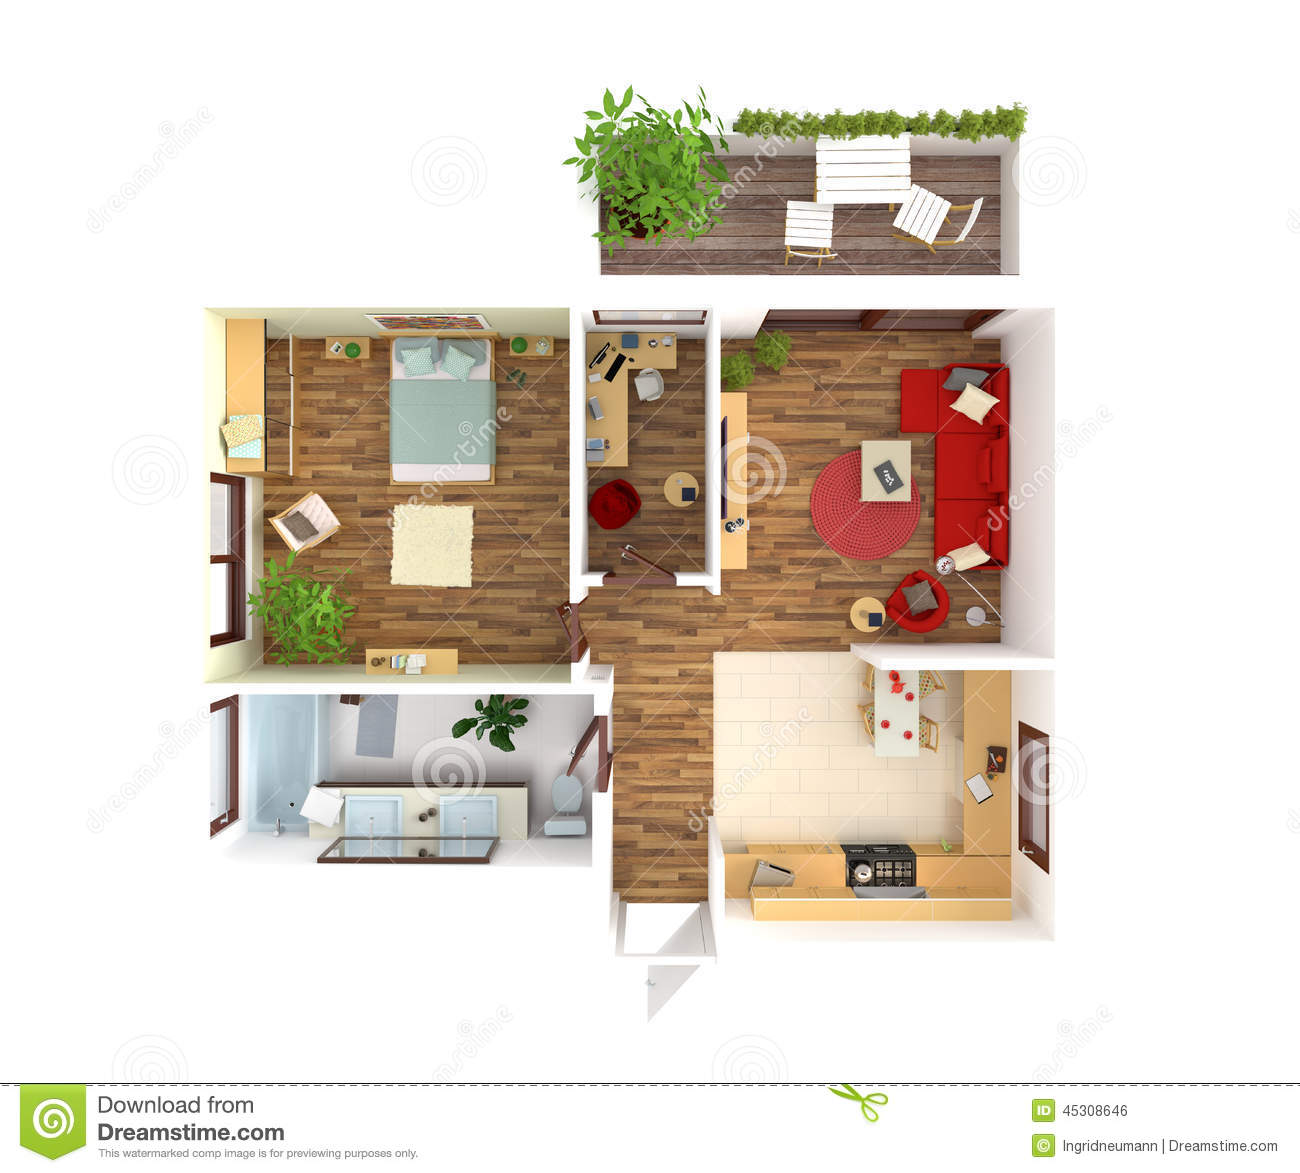 House plan top view interior design stock illustration Home plans with interior pictures